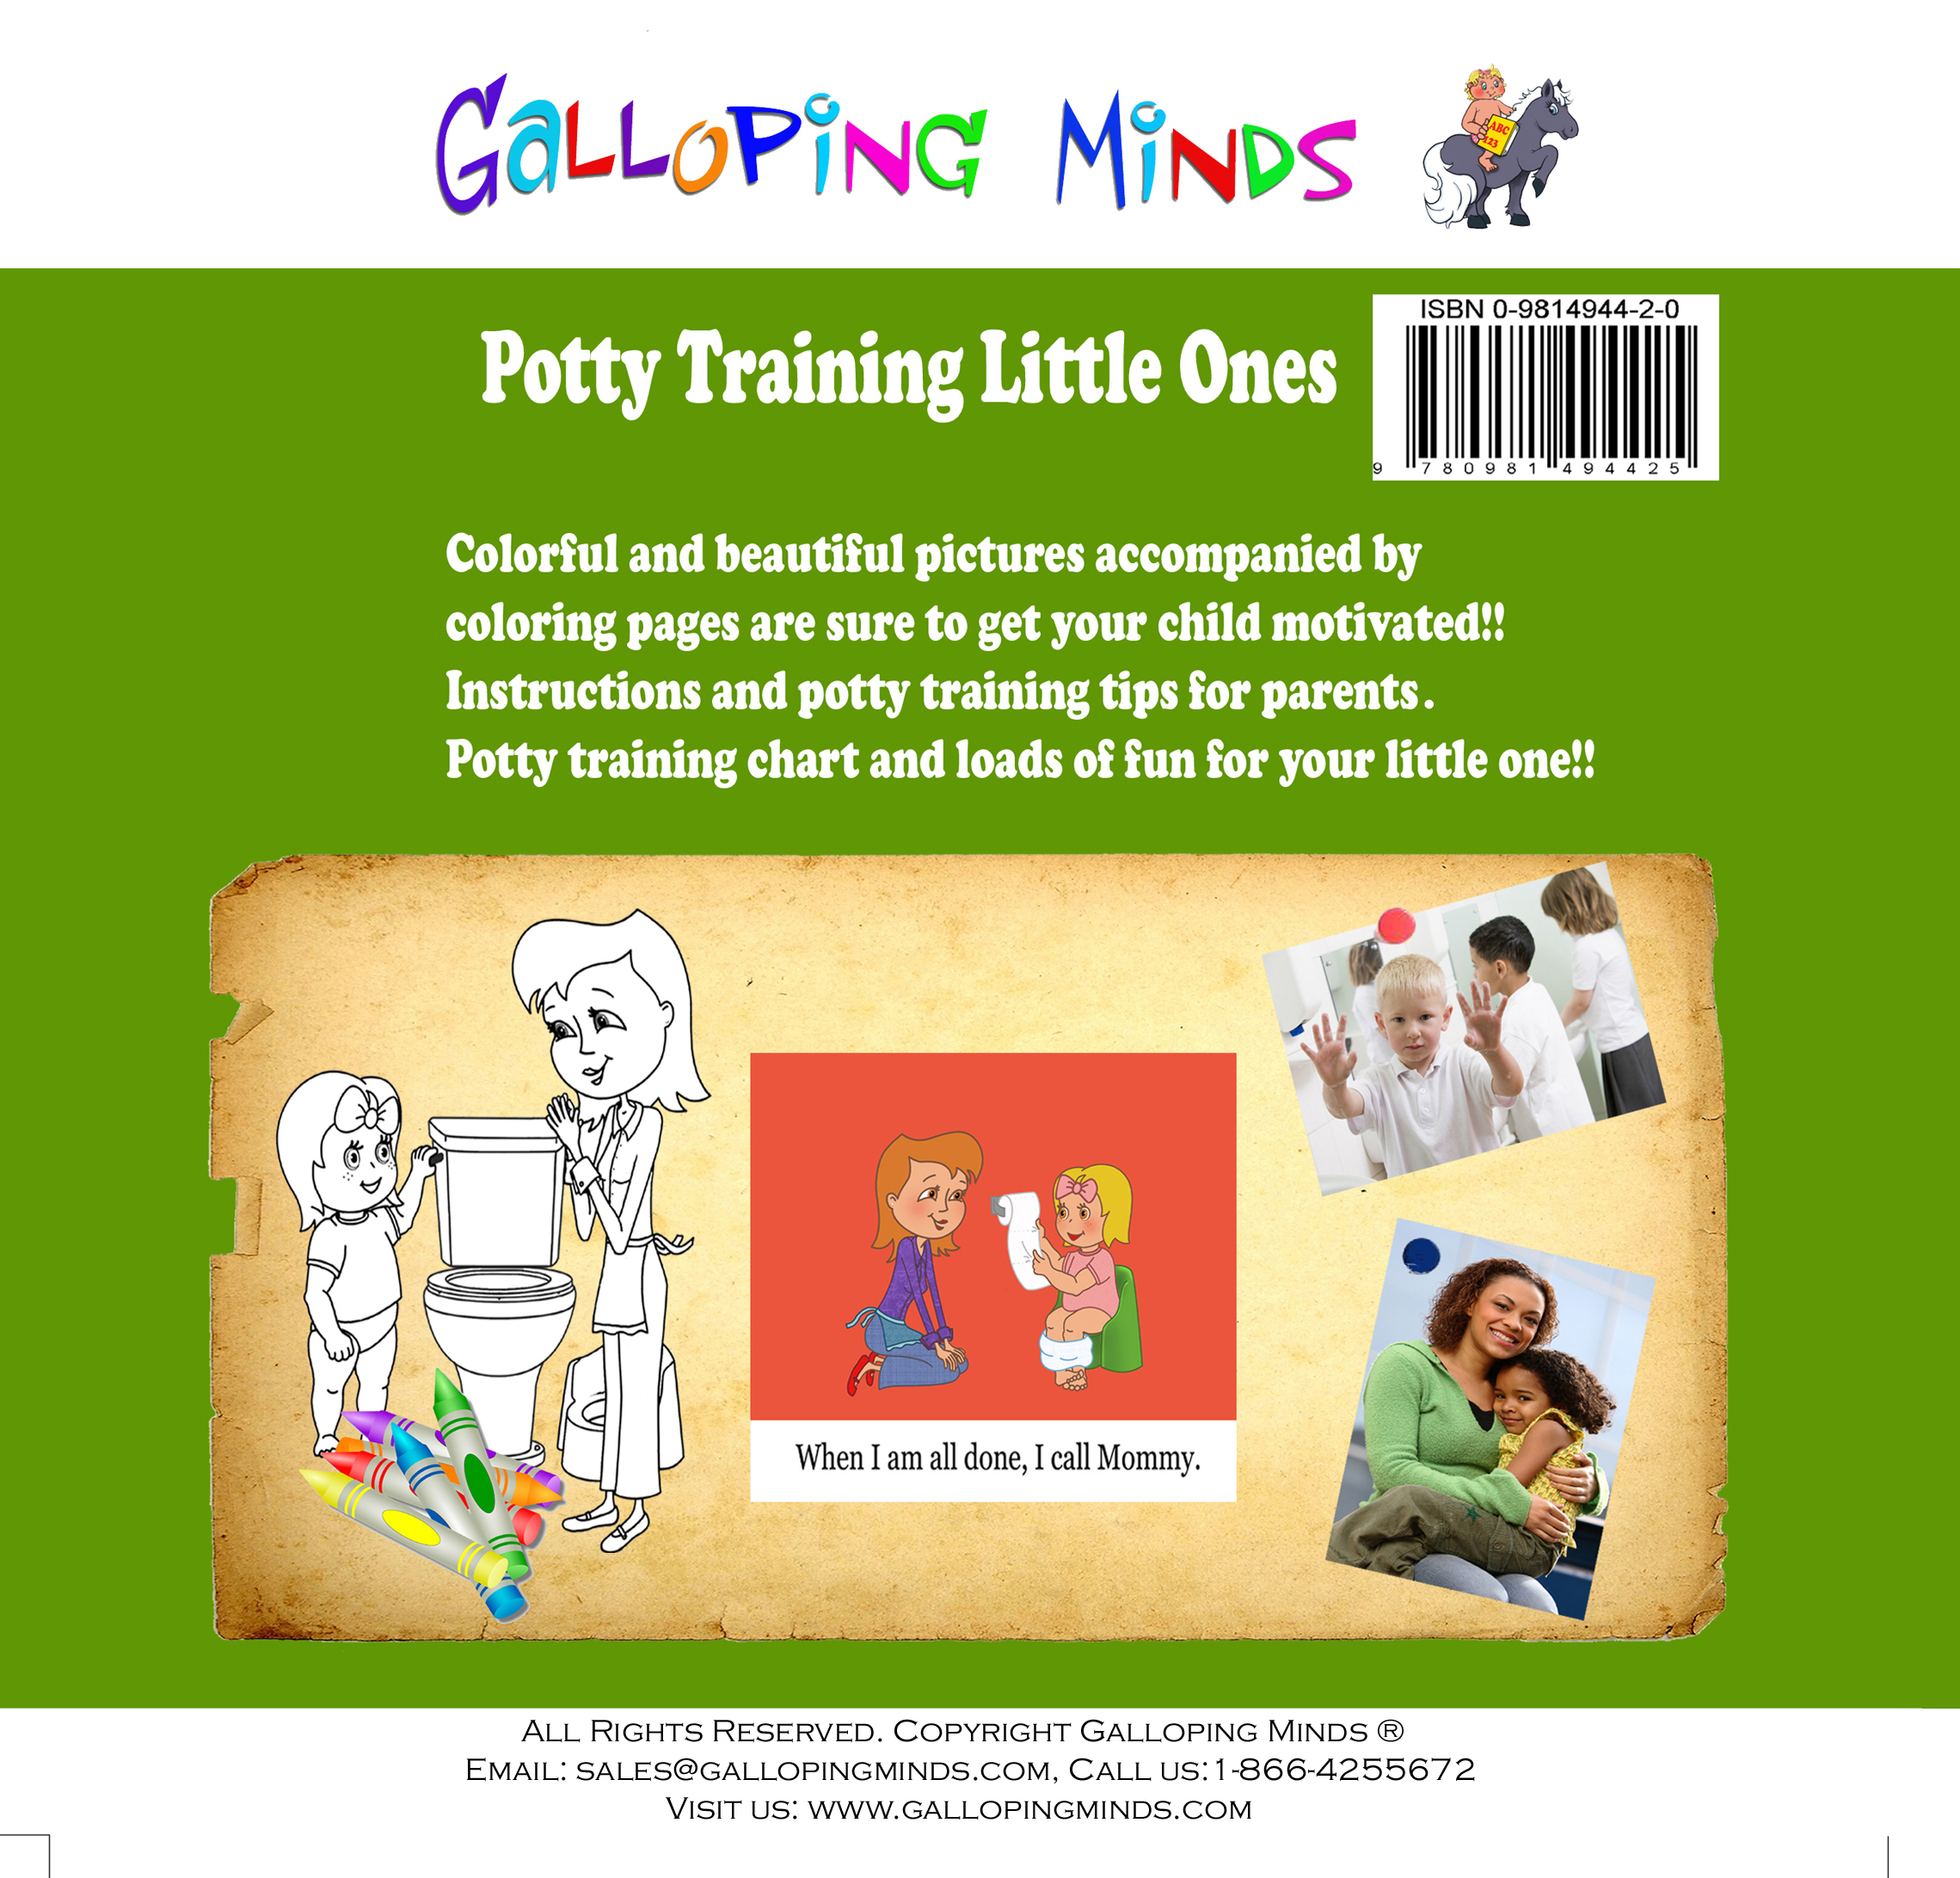 galloping minds potty training resources potty training book galloping minds potty training resources potty training book for boys and girls baby potty training toddler potty training infant potty training